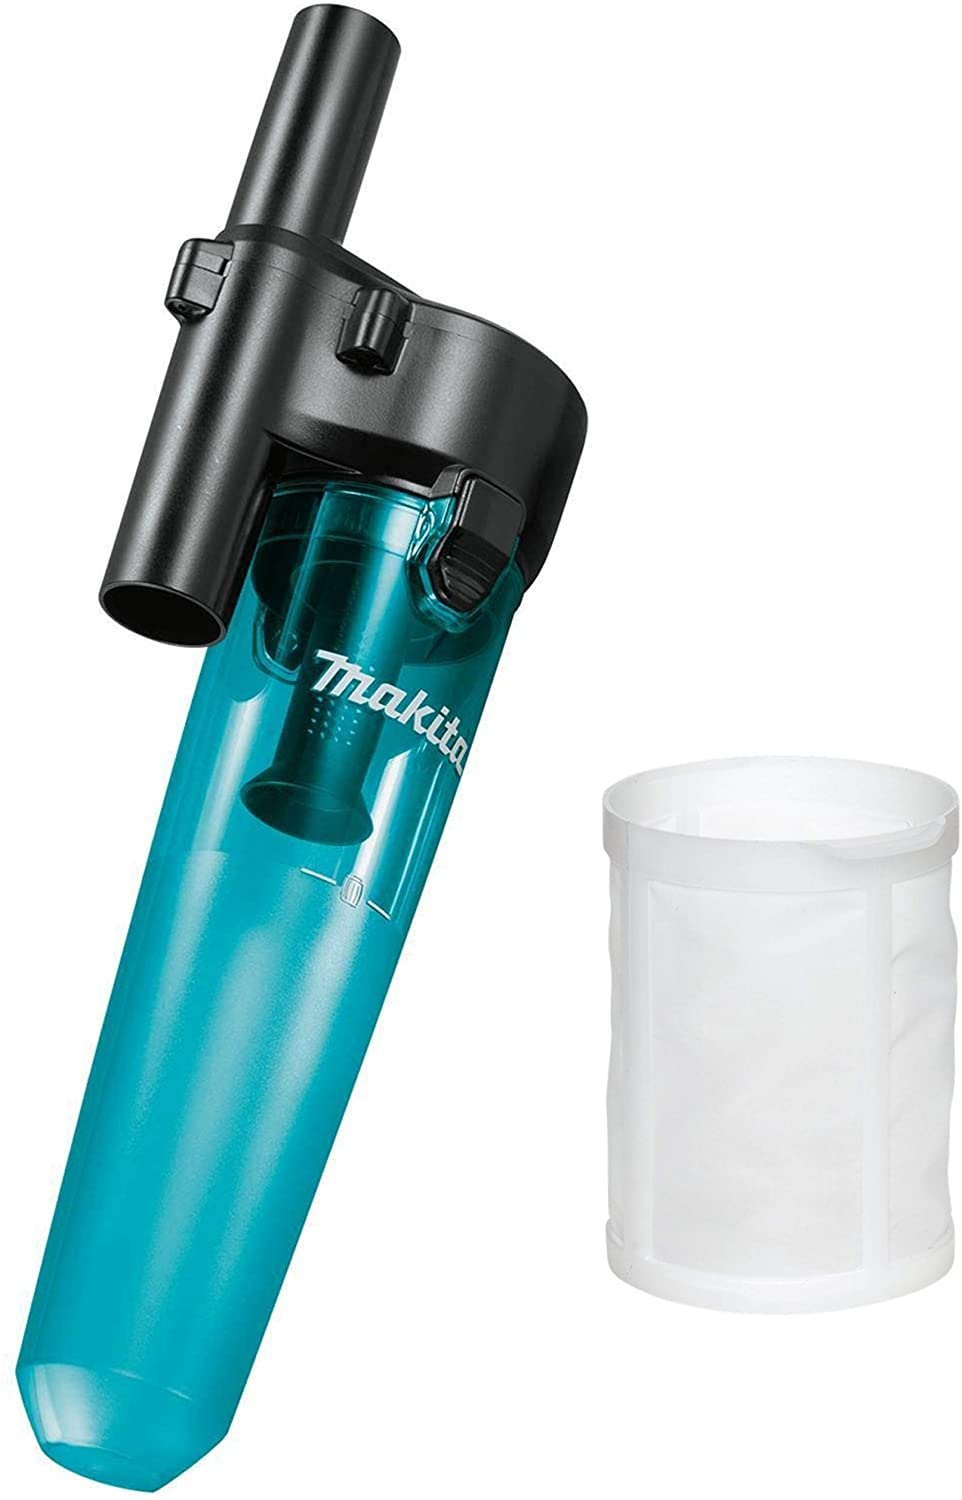 Makita (1) 199553-5 Cyclonic Vacuum Attachment (1) 451208-3 Pre Filter (Vacuums Sold Separately)